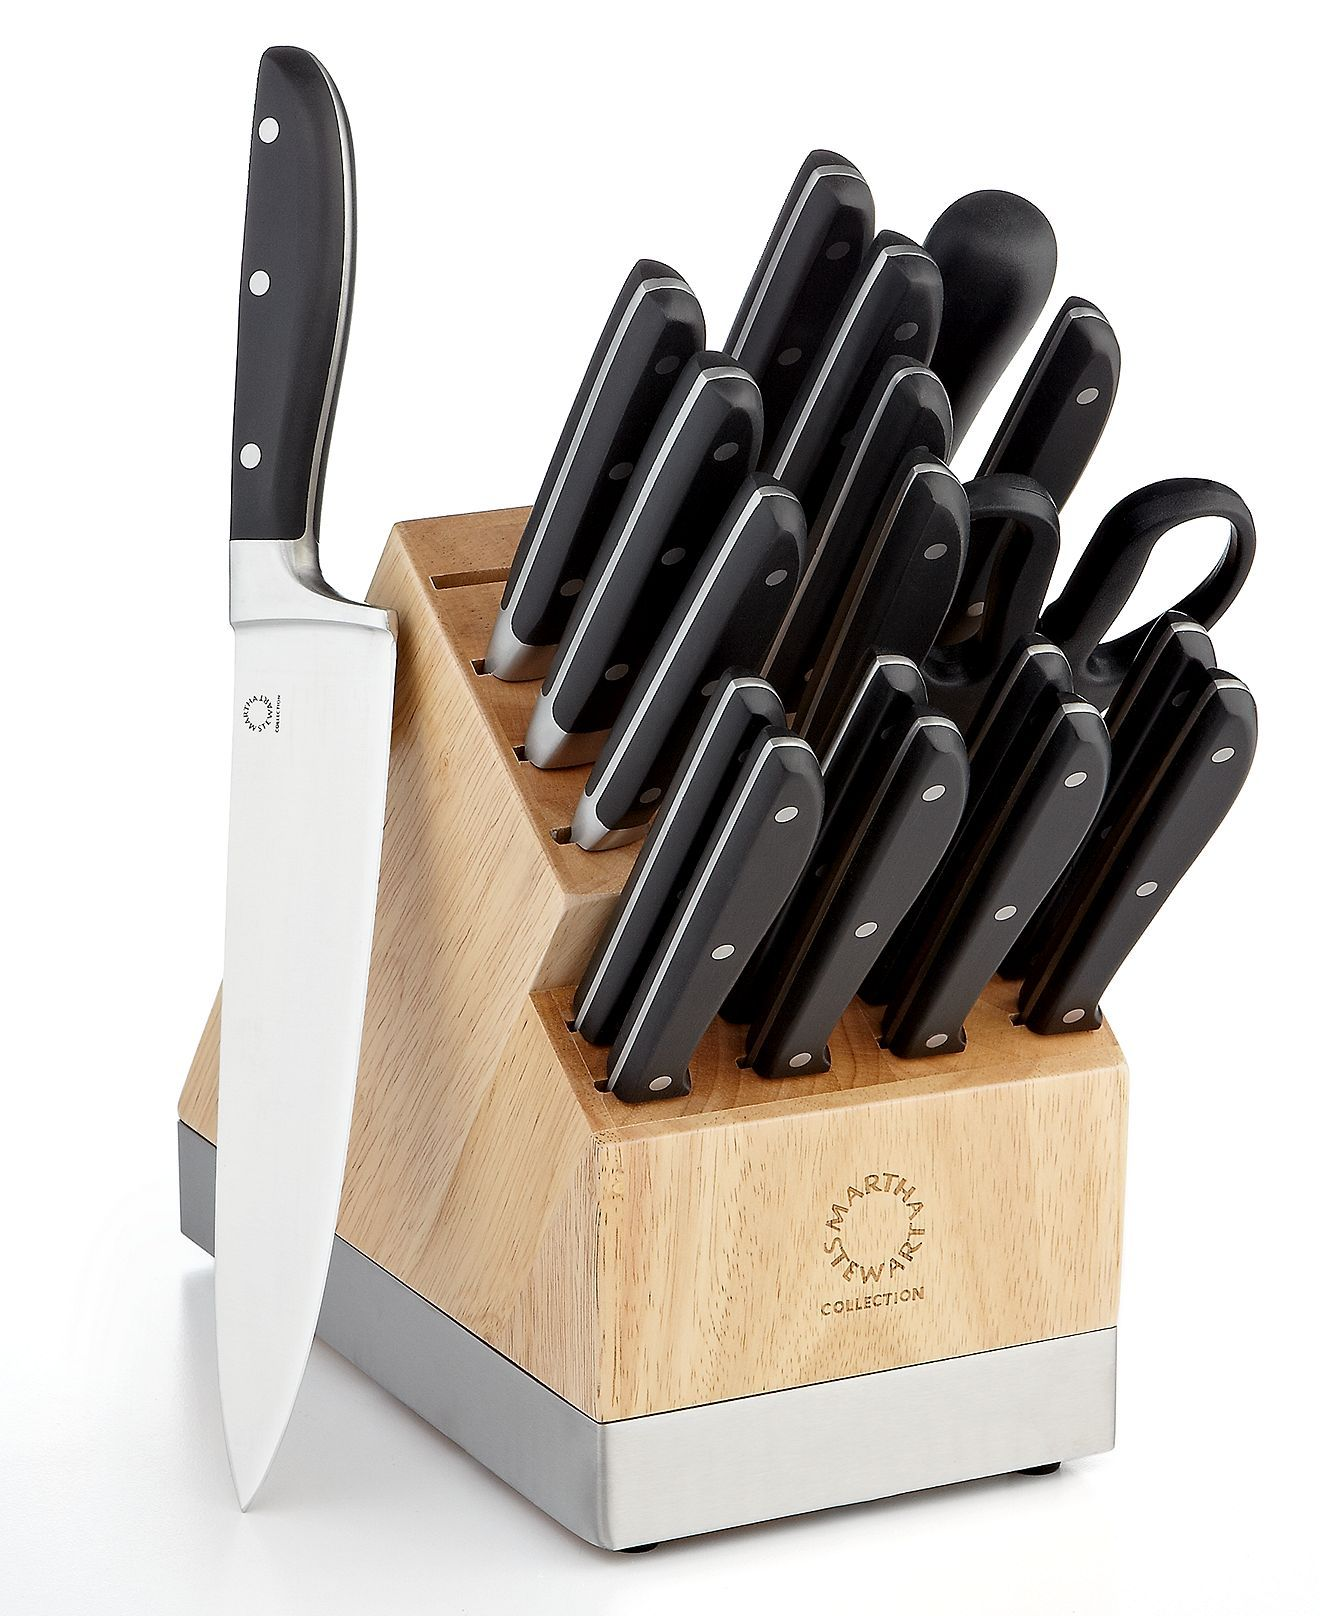 100 knives kitchen 21 piece high carbon stainless steel